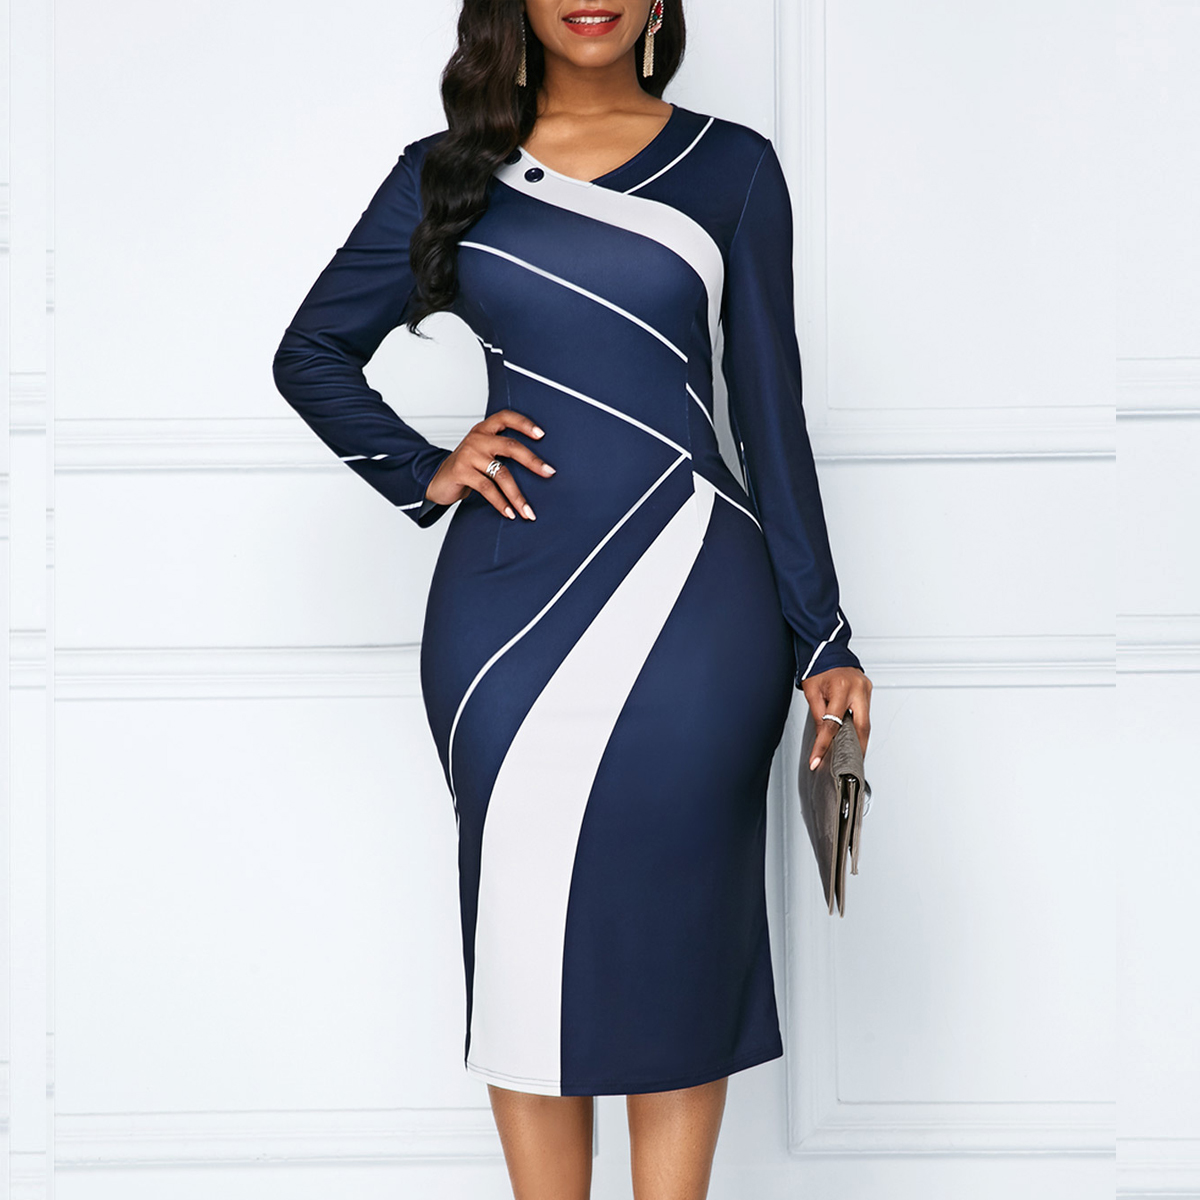 Autumn Winter Casual Plus Size Women Dress